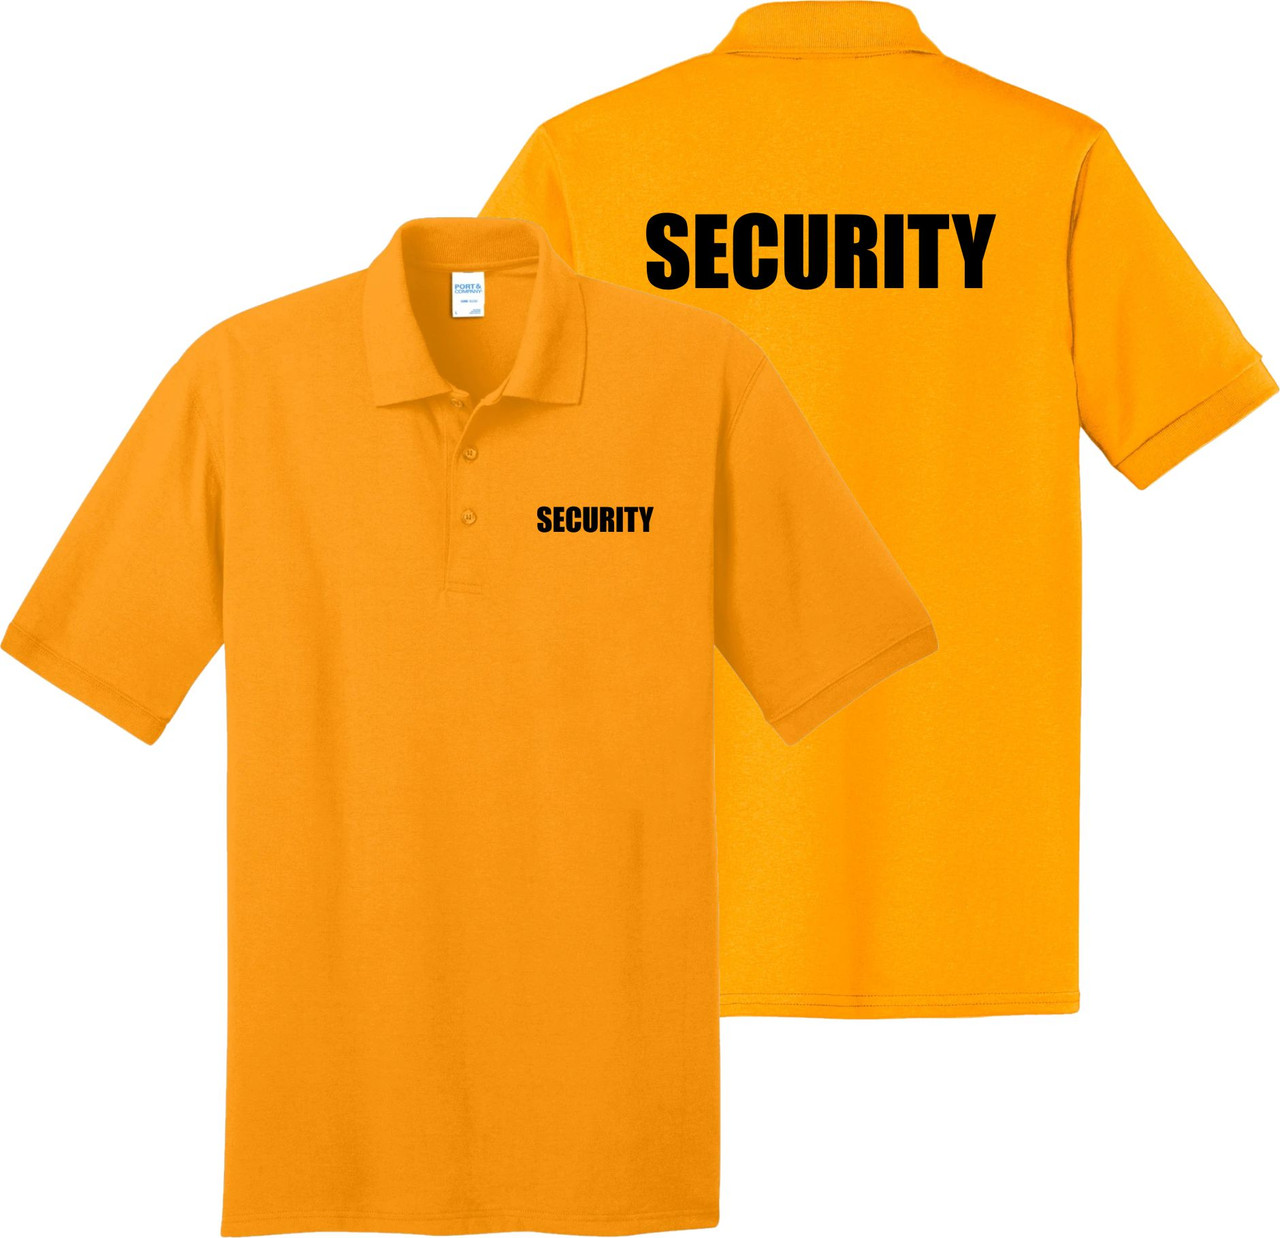 Gold Security Polo Shirt.  Great form security uniforms.